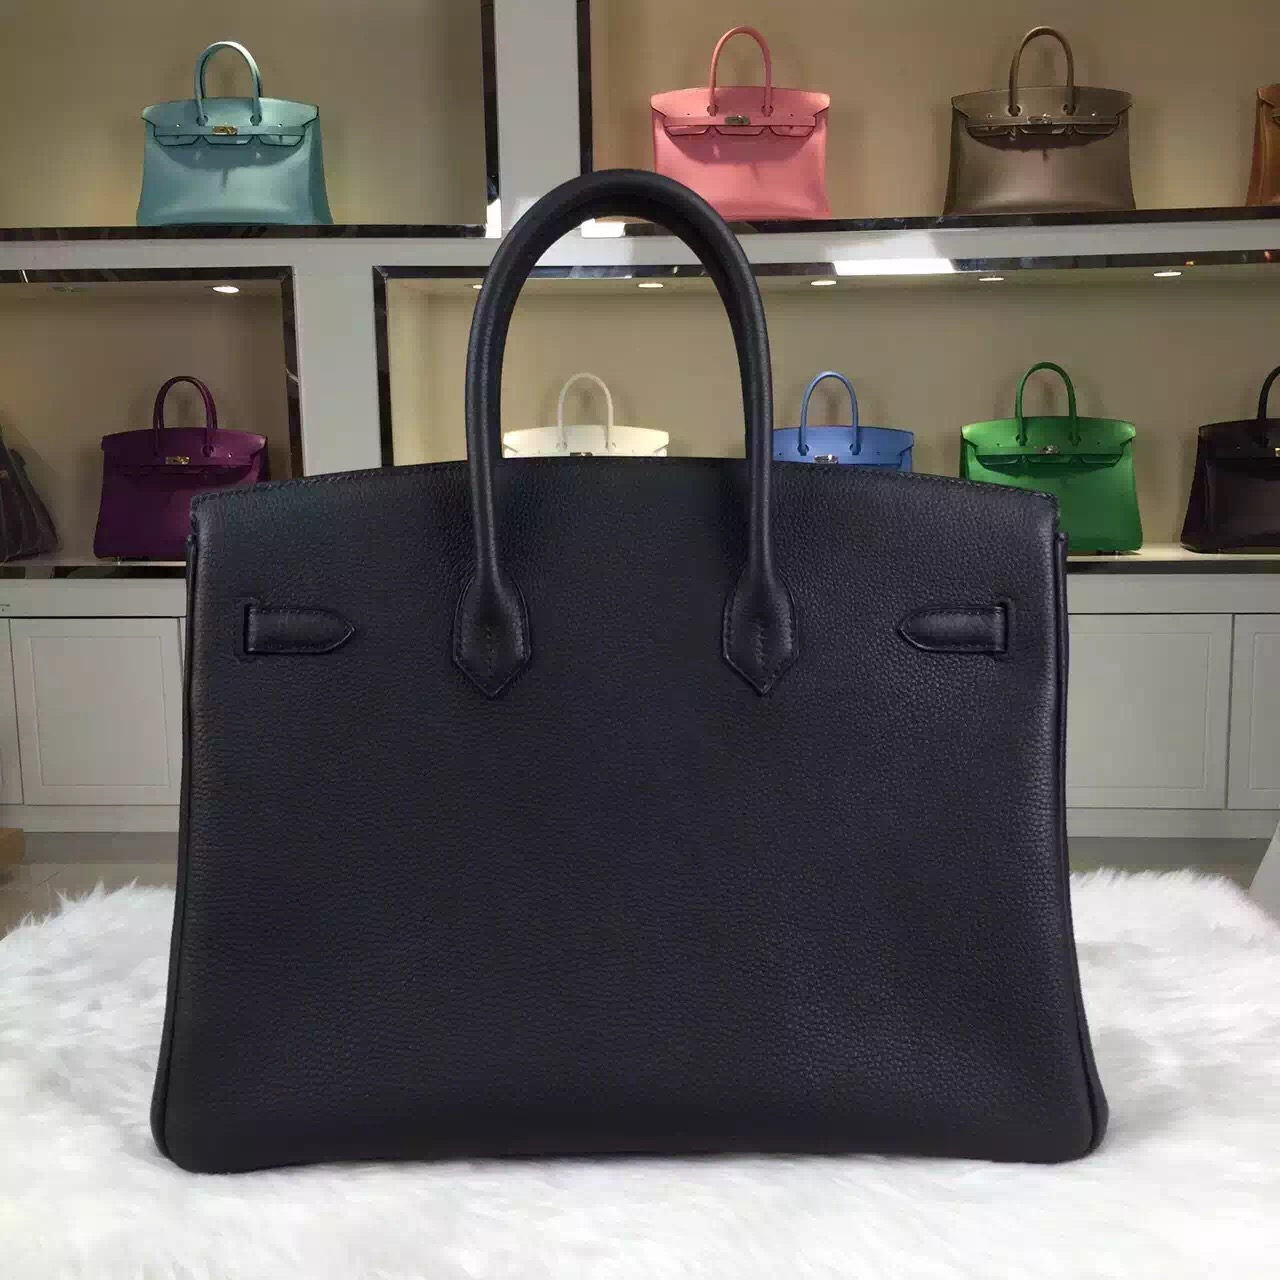 Hand Stitching Hermes 89 Black Original Togo Leather Birkin Bag Women's Handbag 35cm